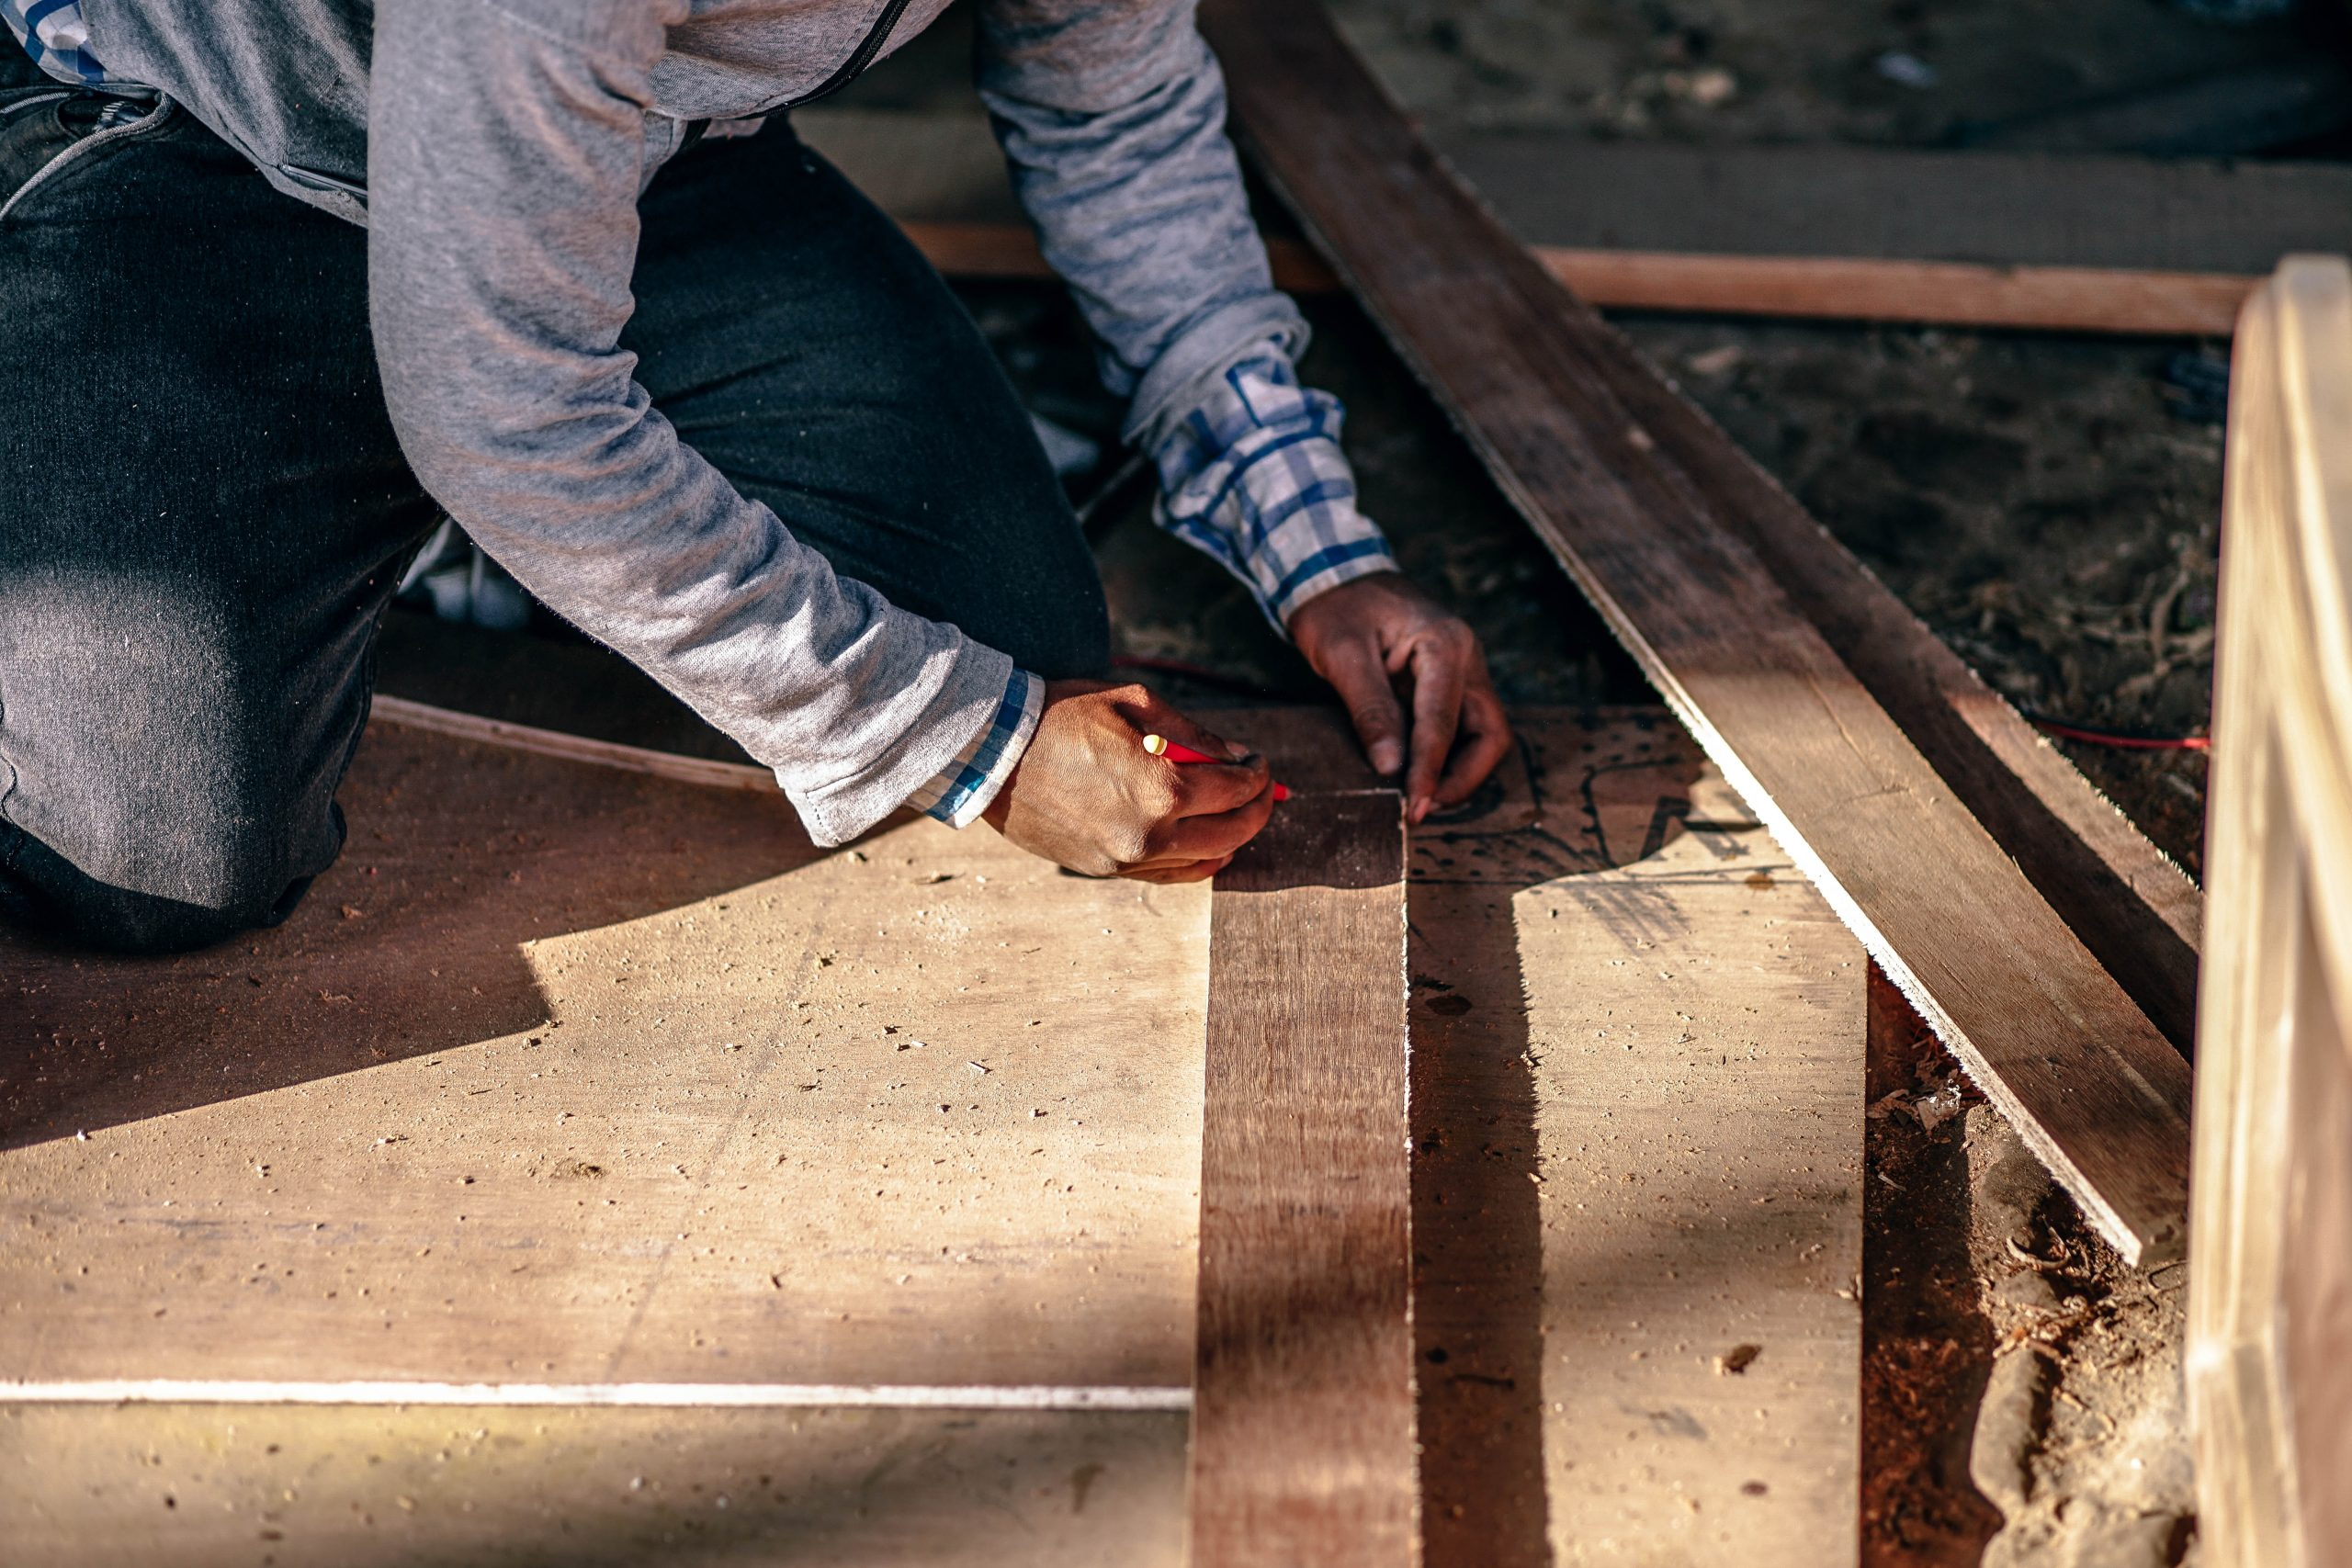 The Construction skills shortage continues